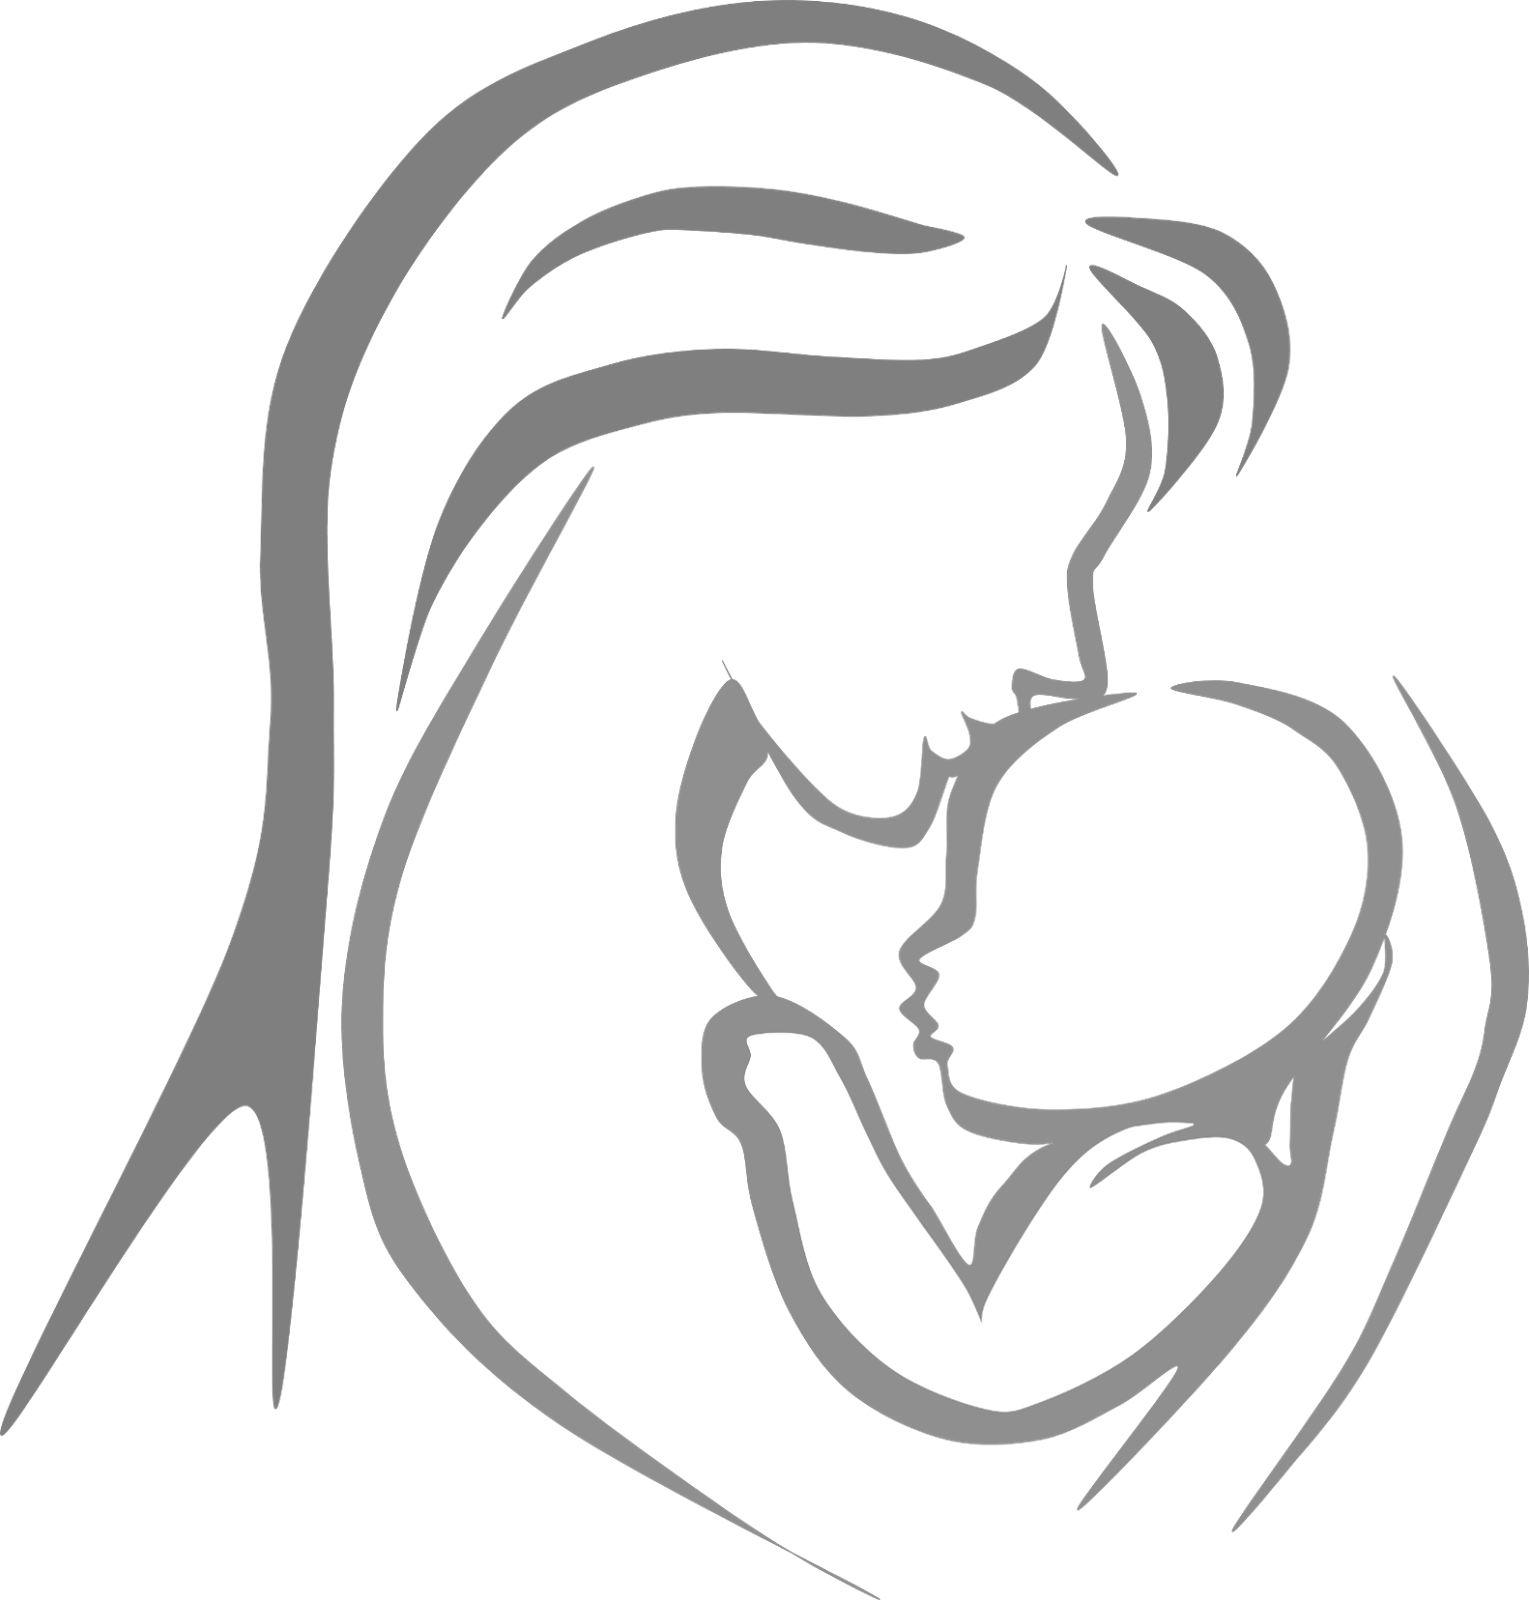 Gallery free mother baby. Caring clipart caring mom